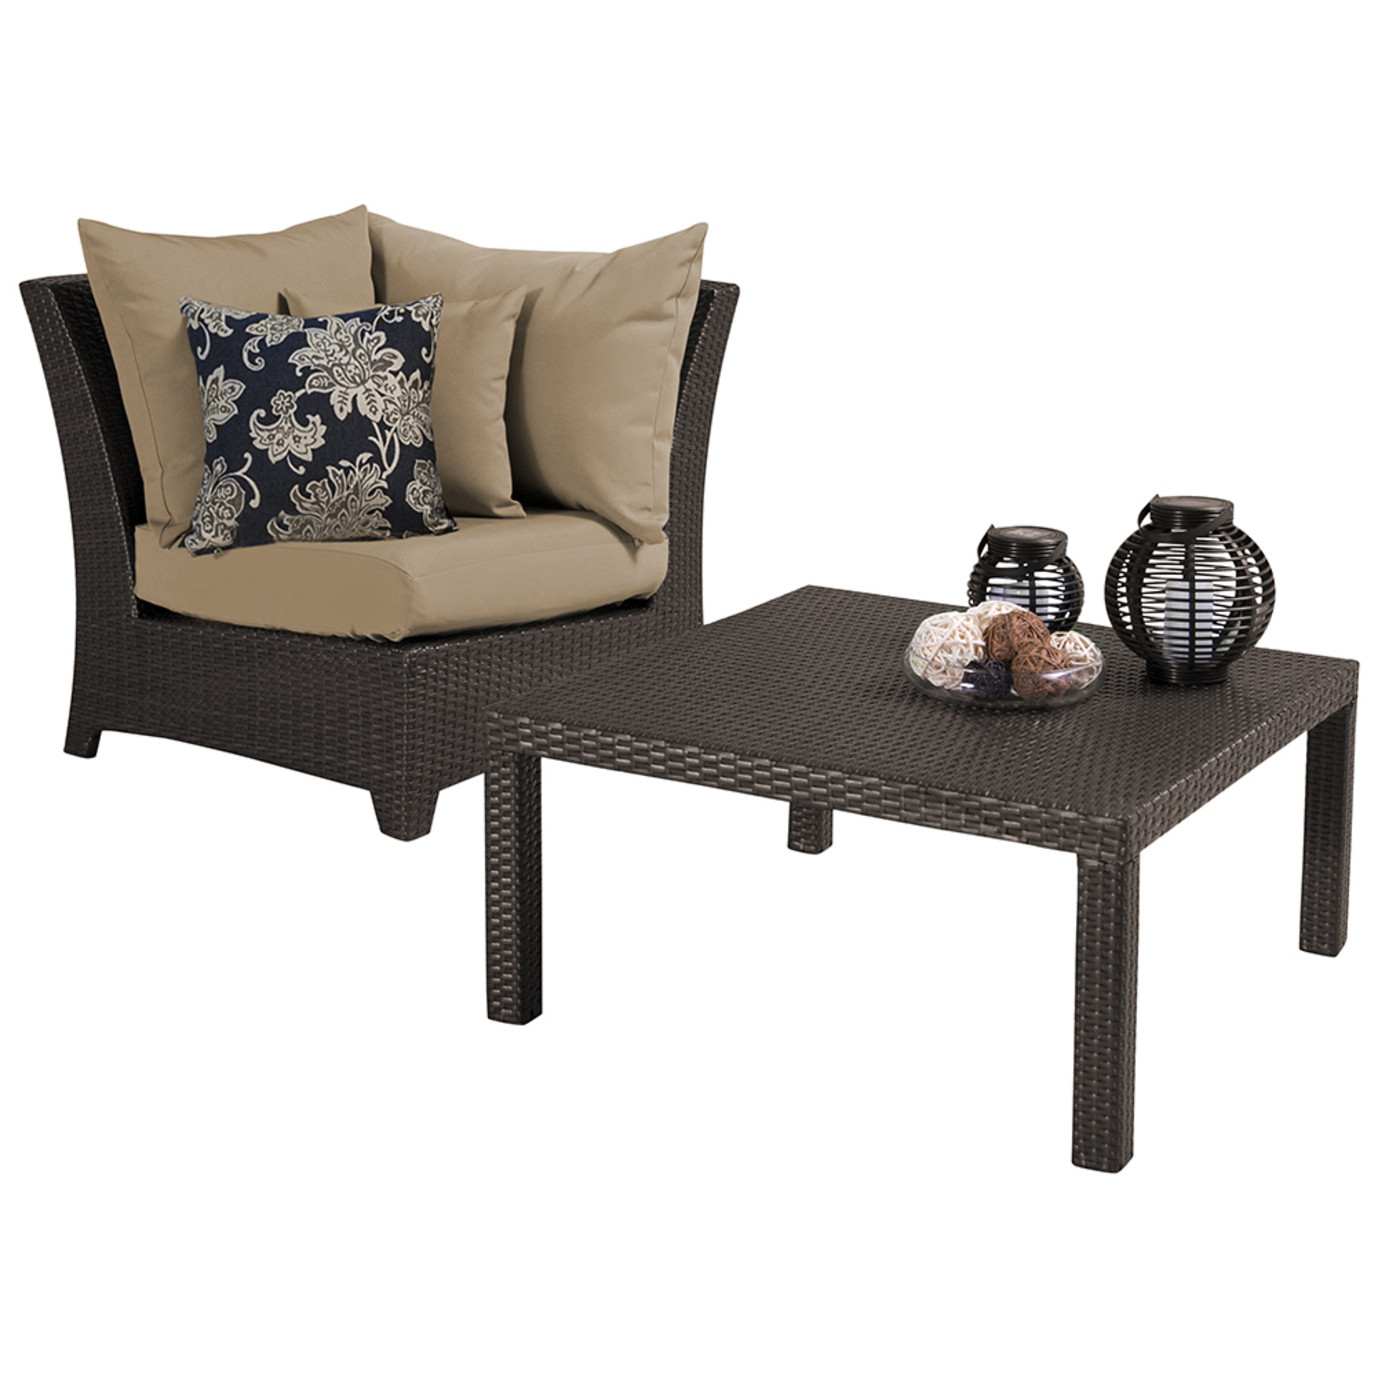 Deco Corner with Table - Delano Beige